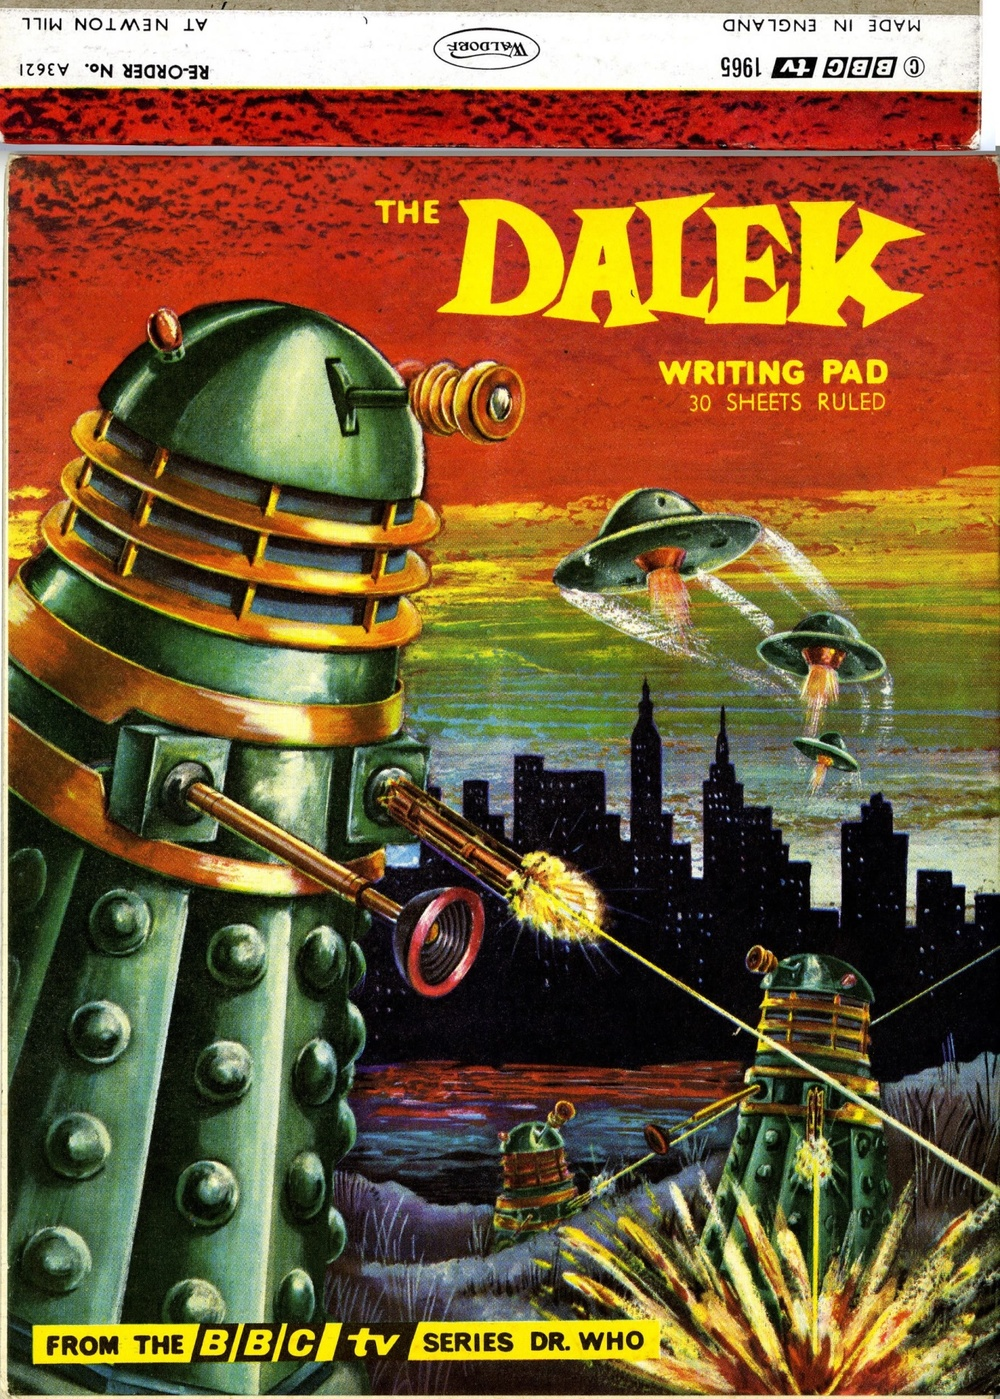 Newton Mills Ltd., Waldorf Division, Dalek writing pad